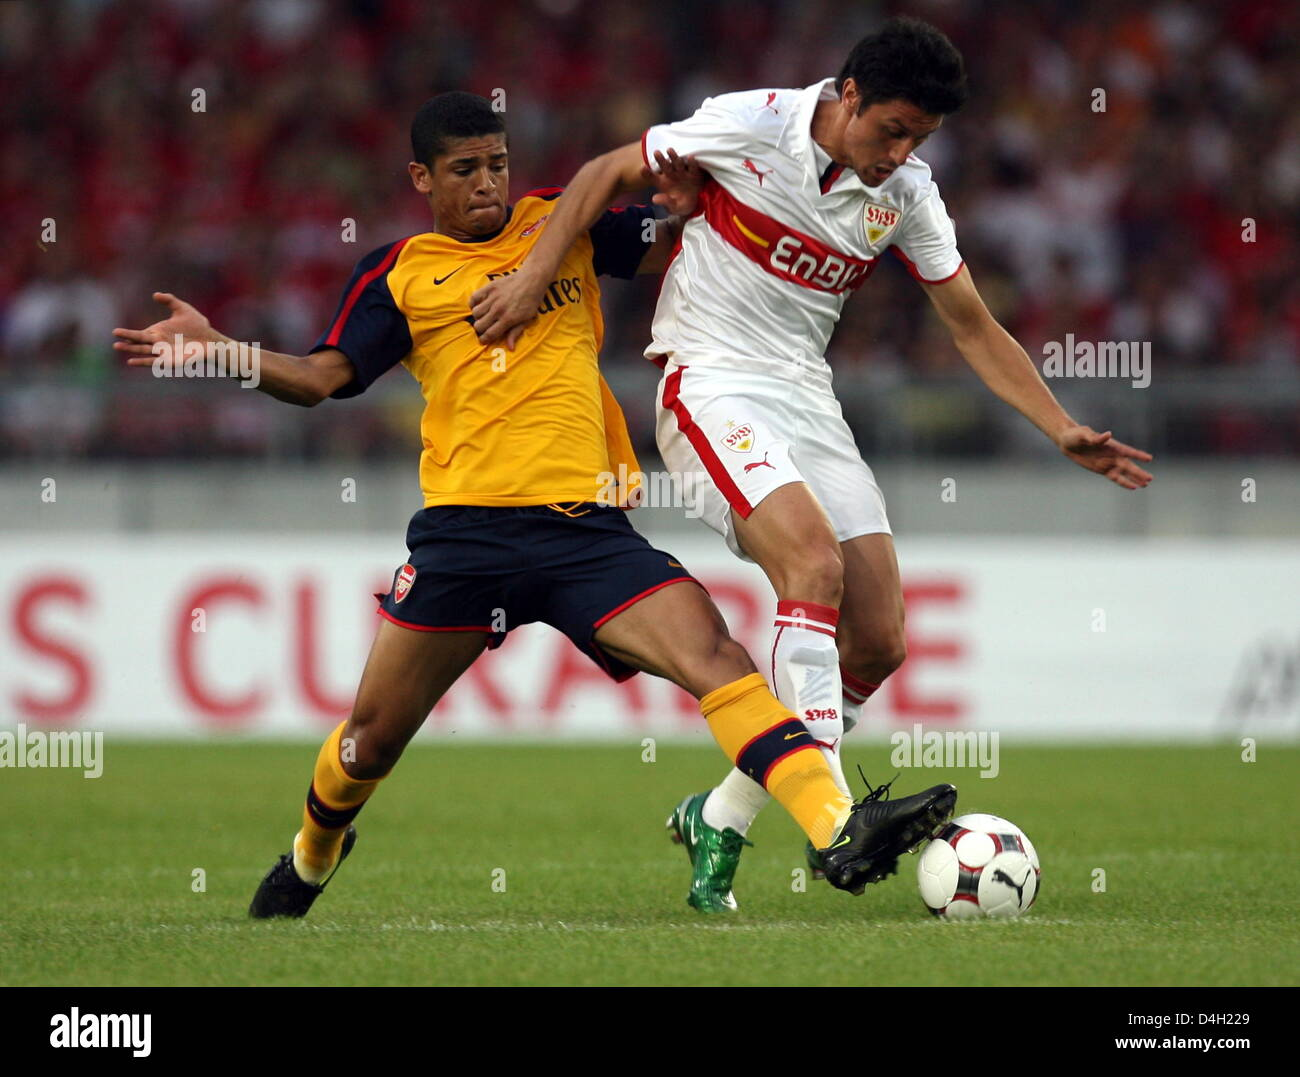 Stuttgart's Ciprian Marica (R) and Arsenal's Denilson (L) vie for the ball during the soccer test match - Stock Image